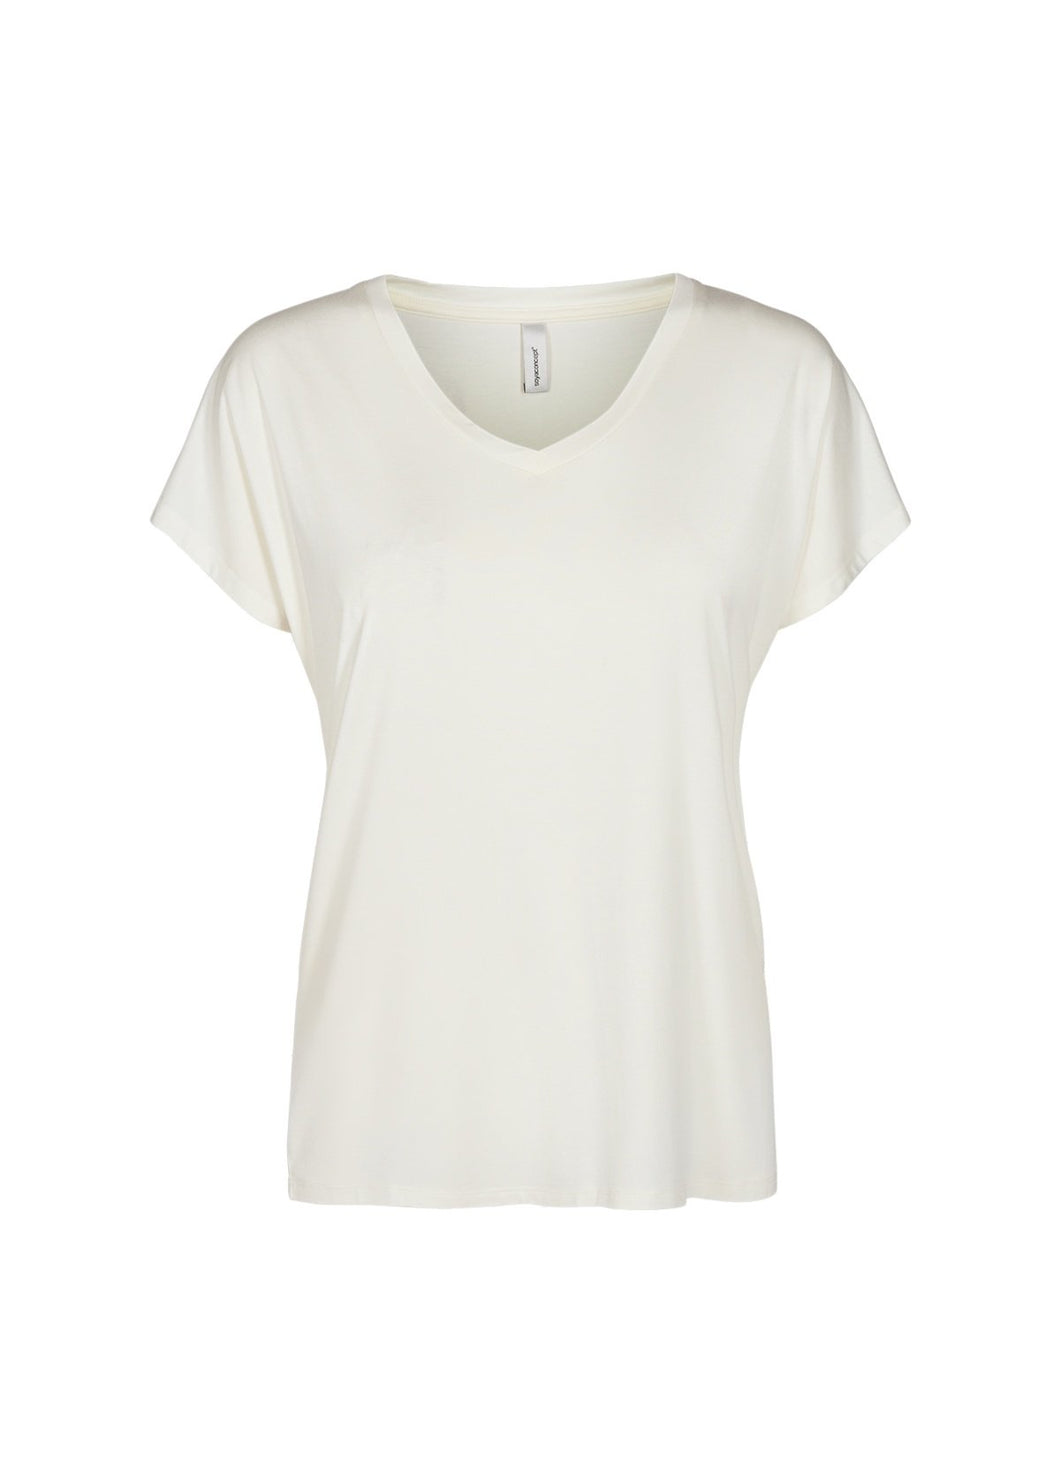 Marica T Shirt In Off White T-Shirt Soyaconcept